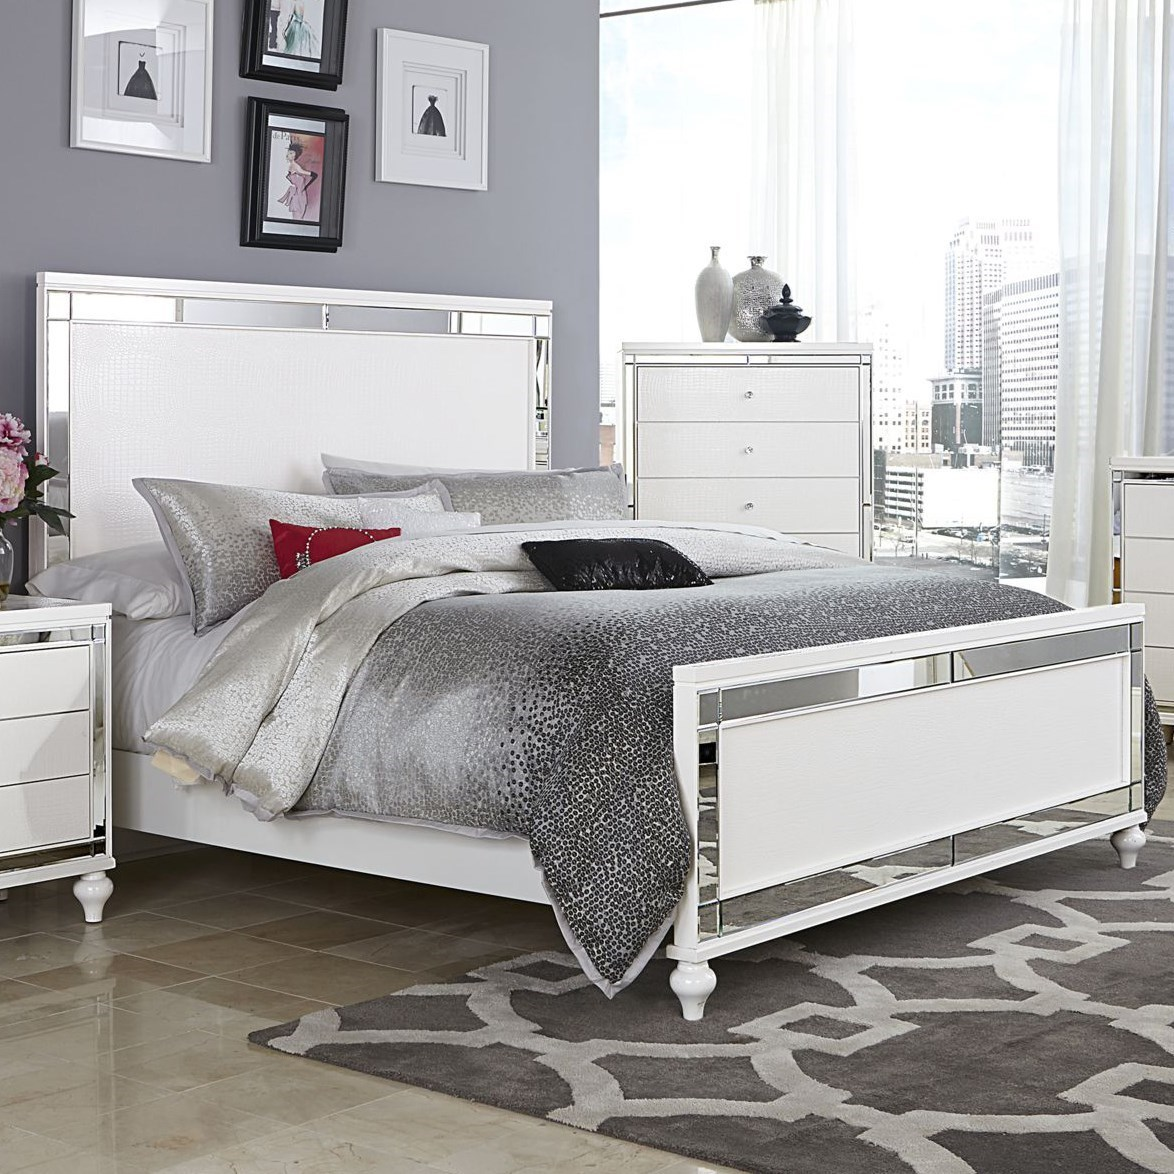 Alonza Queen Bed by Homelegance at Simply Home by Lindy's